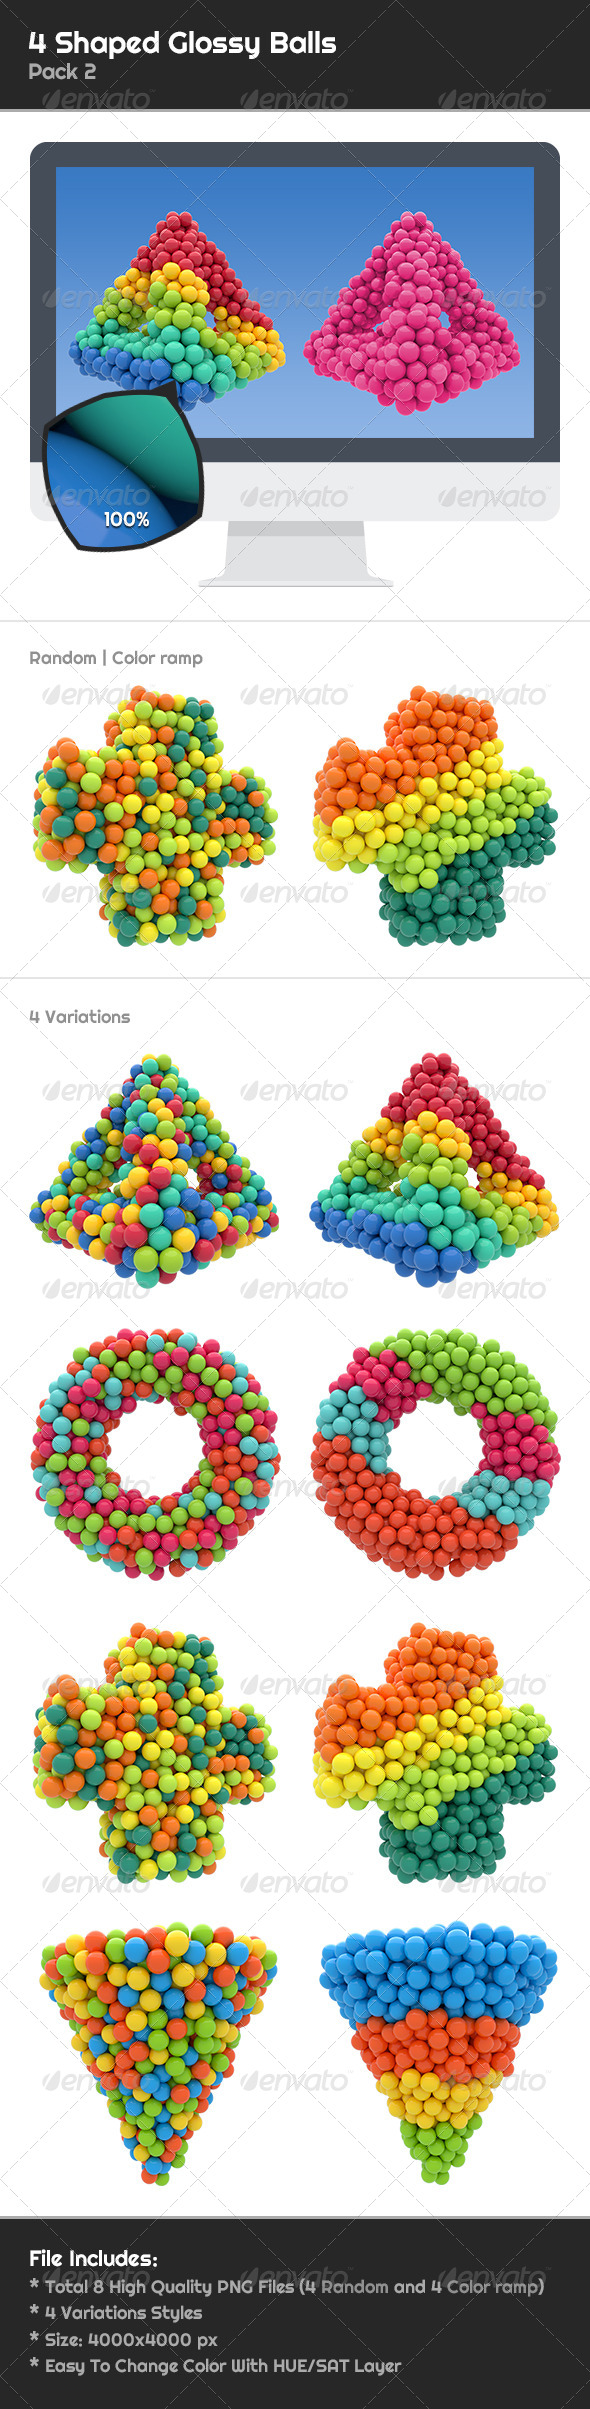 GraphicRiver 4 Shaped Glossy Balls Pack 2 6850080